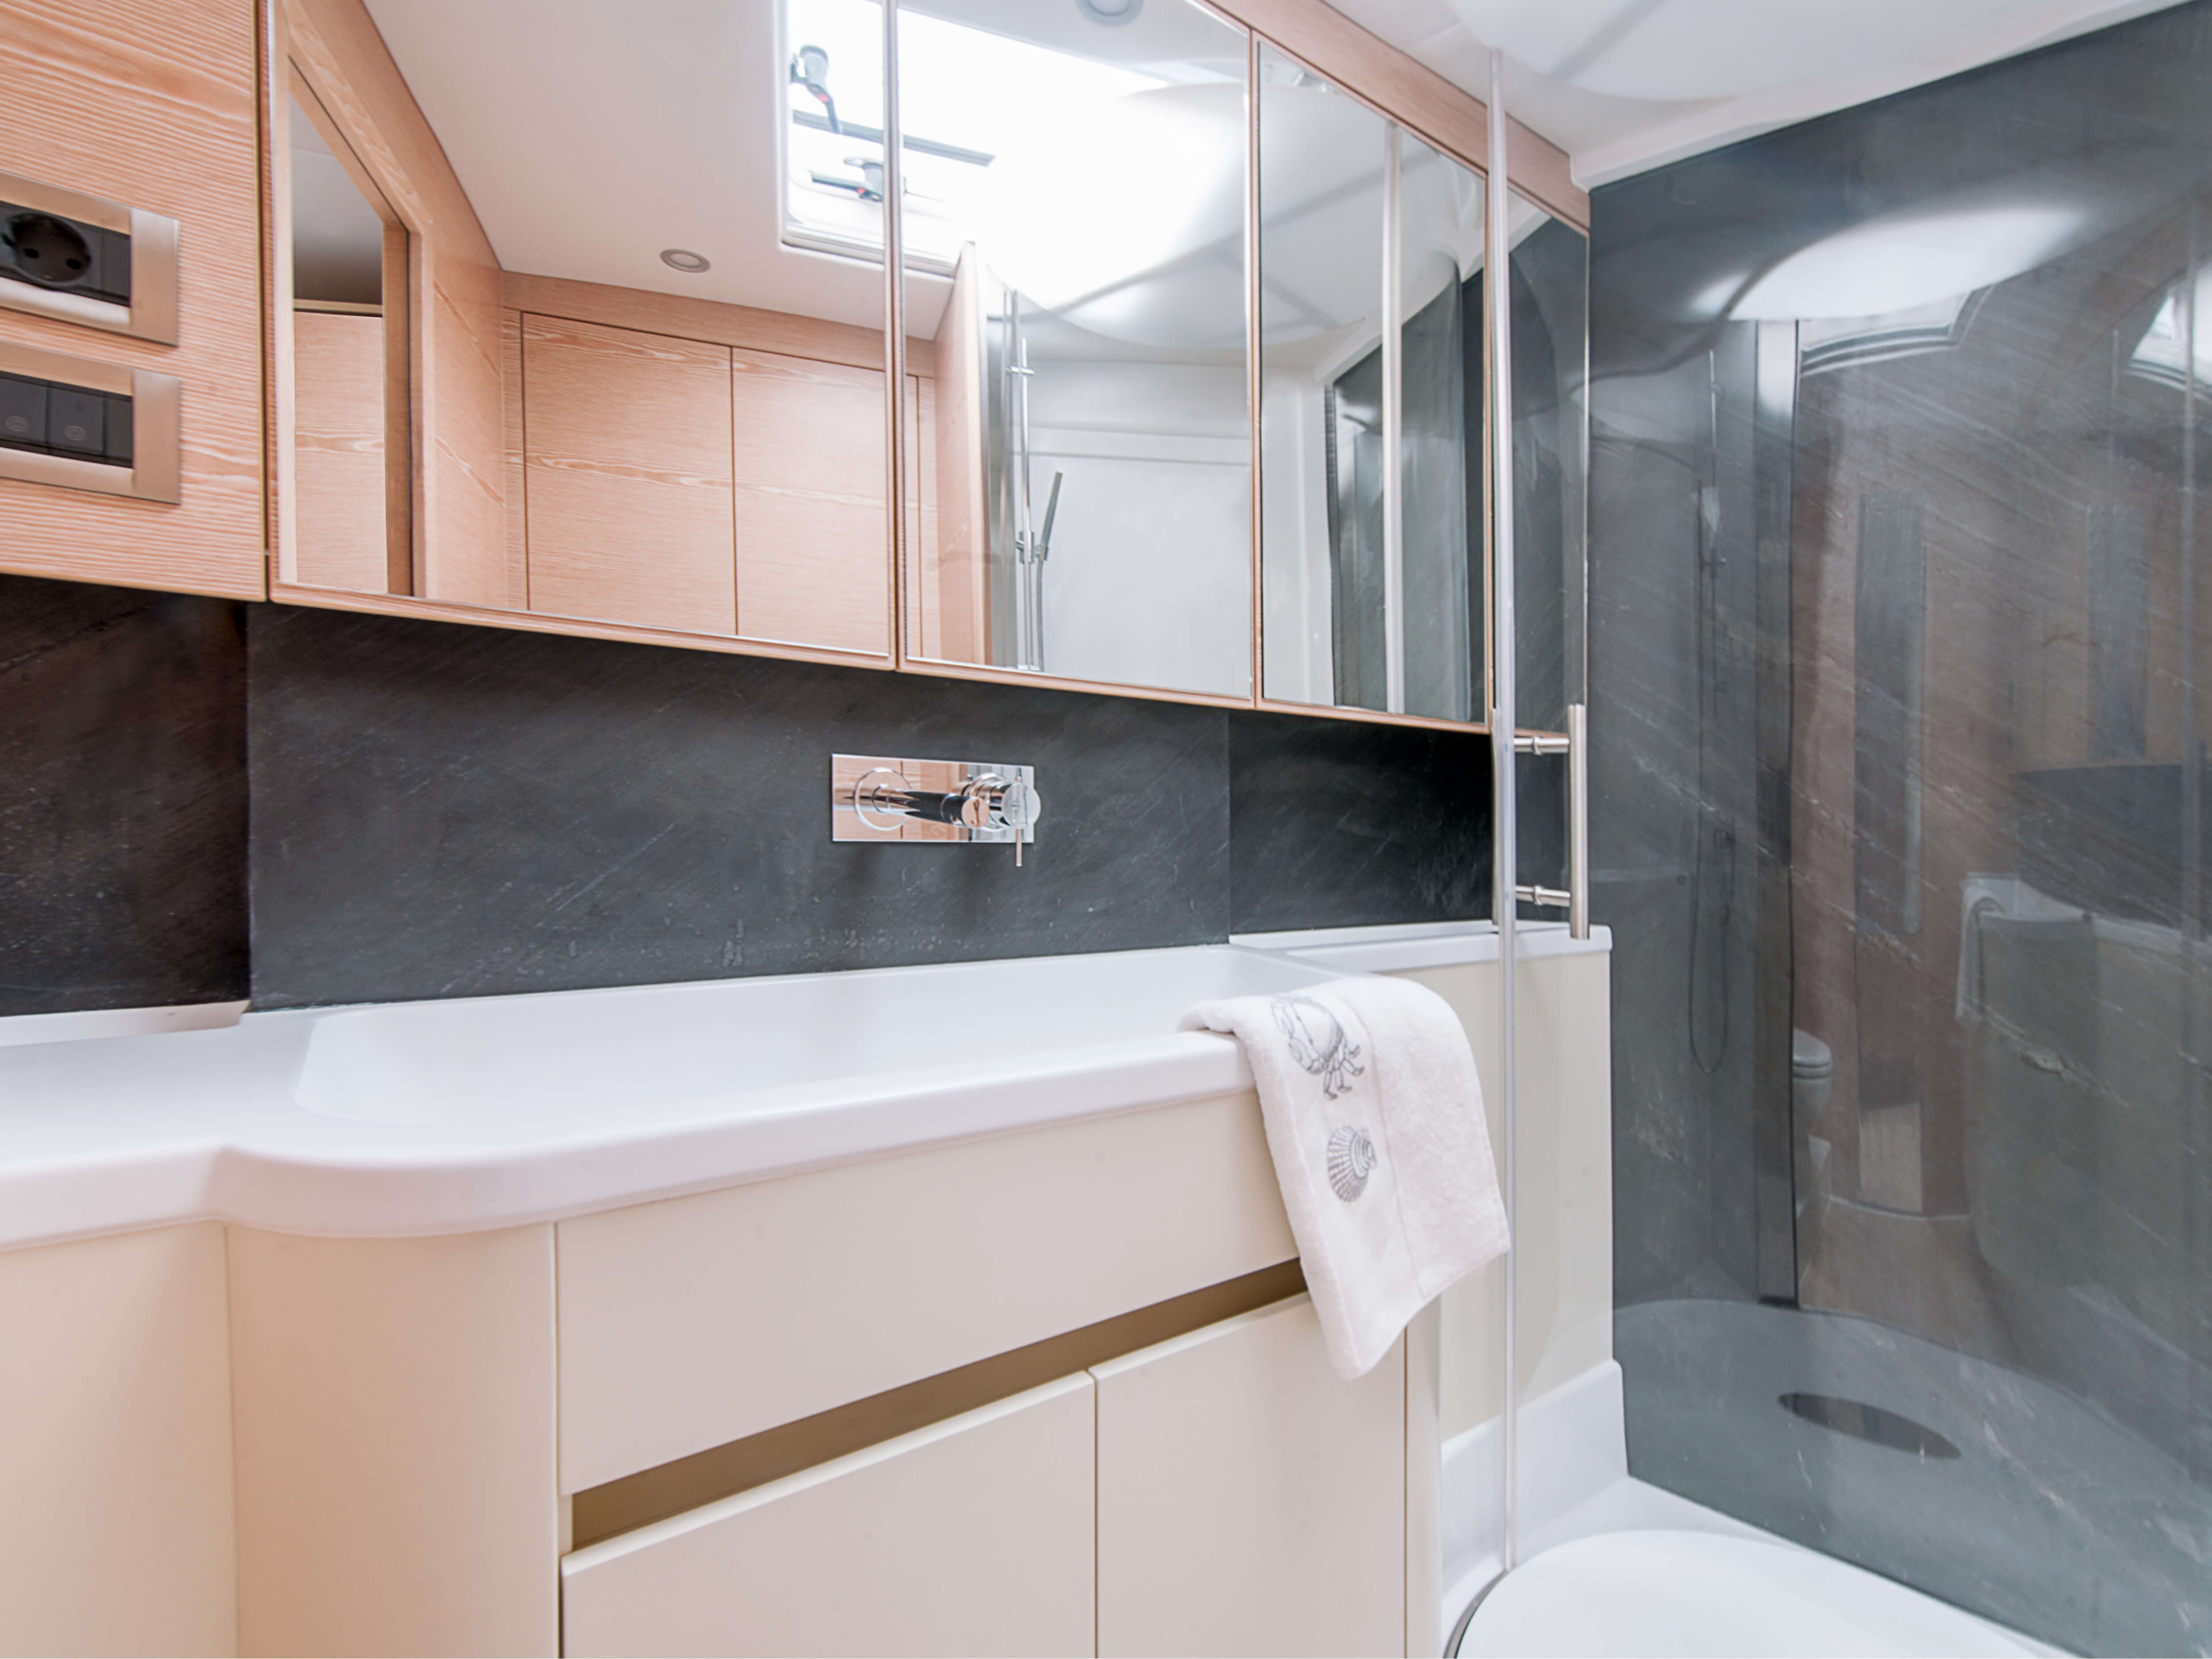 Hanse 675 | separate shower, sink, mirrored storage compartments | Hanse